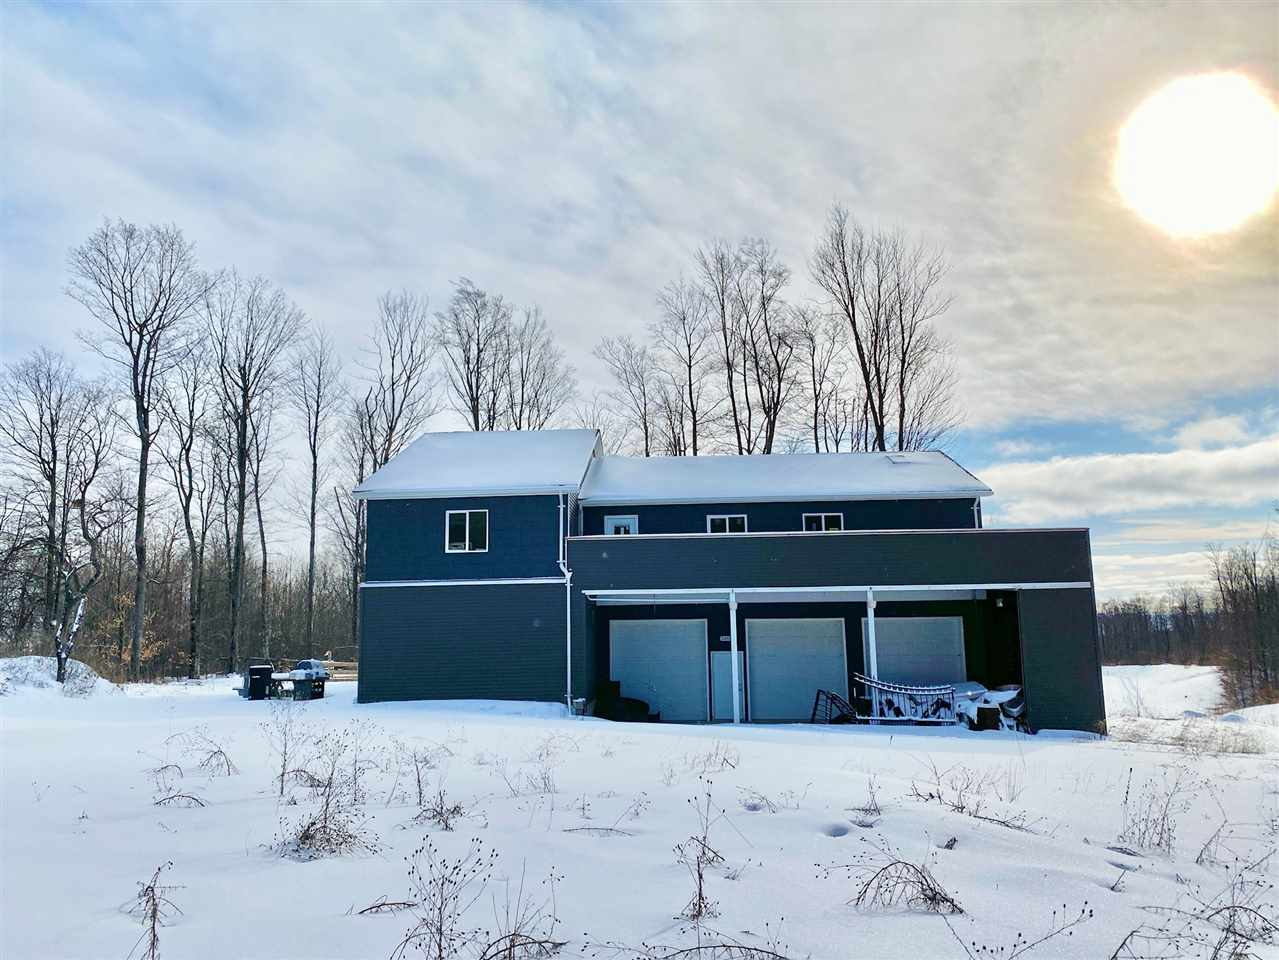 MLS 461105 - 5408  Burt Lake Views , Alanson, MI